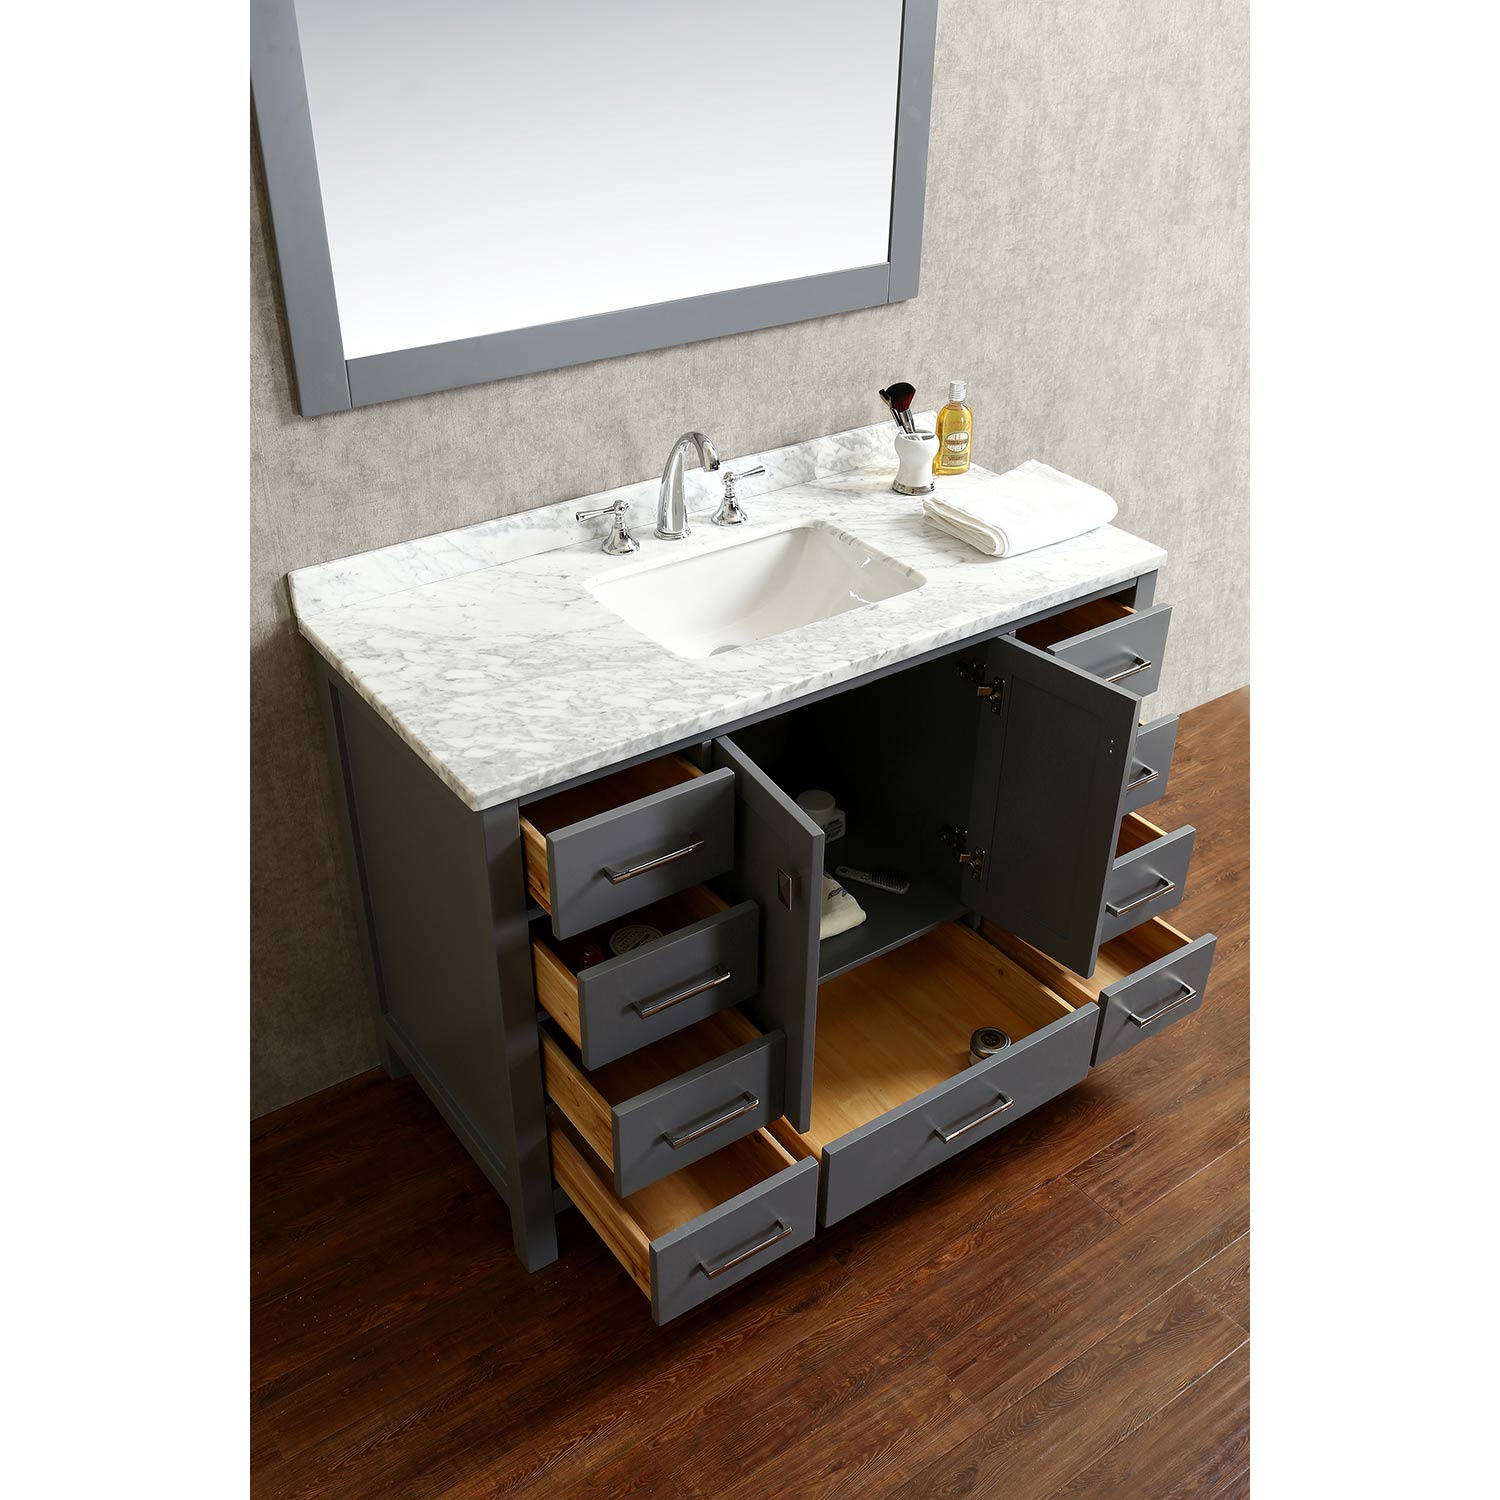 of and vanity bathrooms vanities luxury inch bathroom sink cabinets double sinks picture